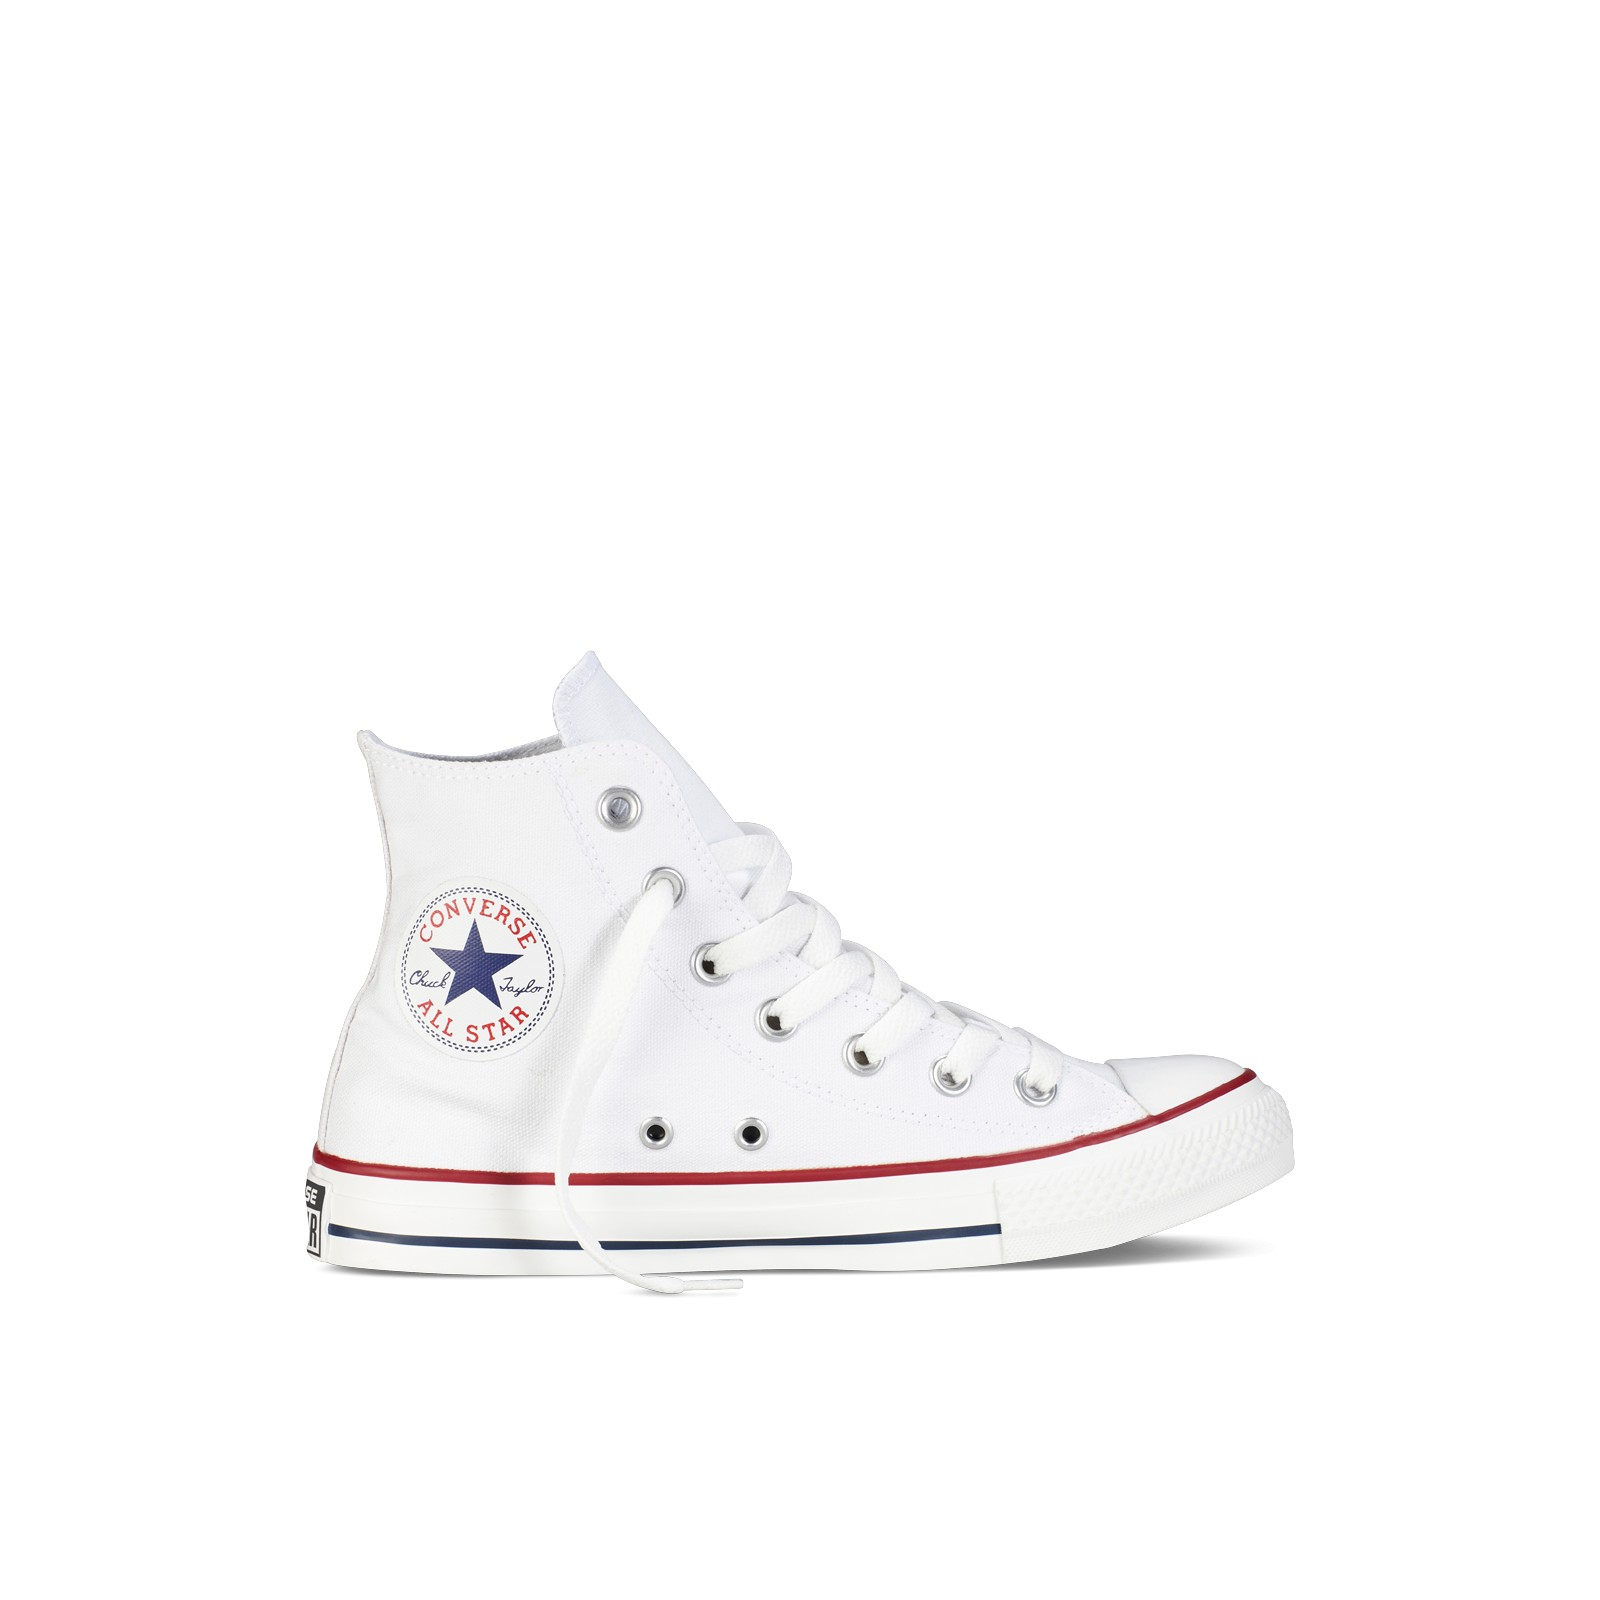 chaussures converse all star toile haut blanc habiz. Black Bedroom Furniture Sets. Home Design Ideas